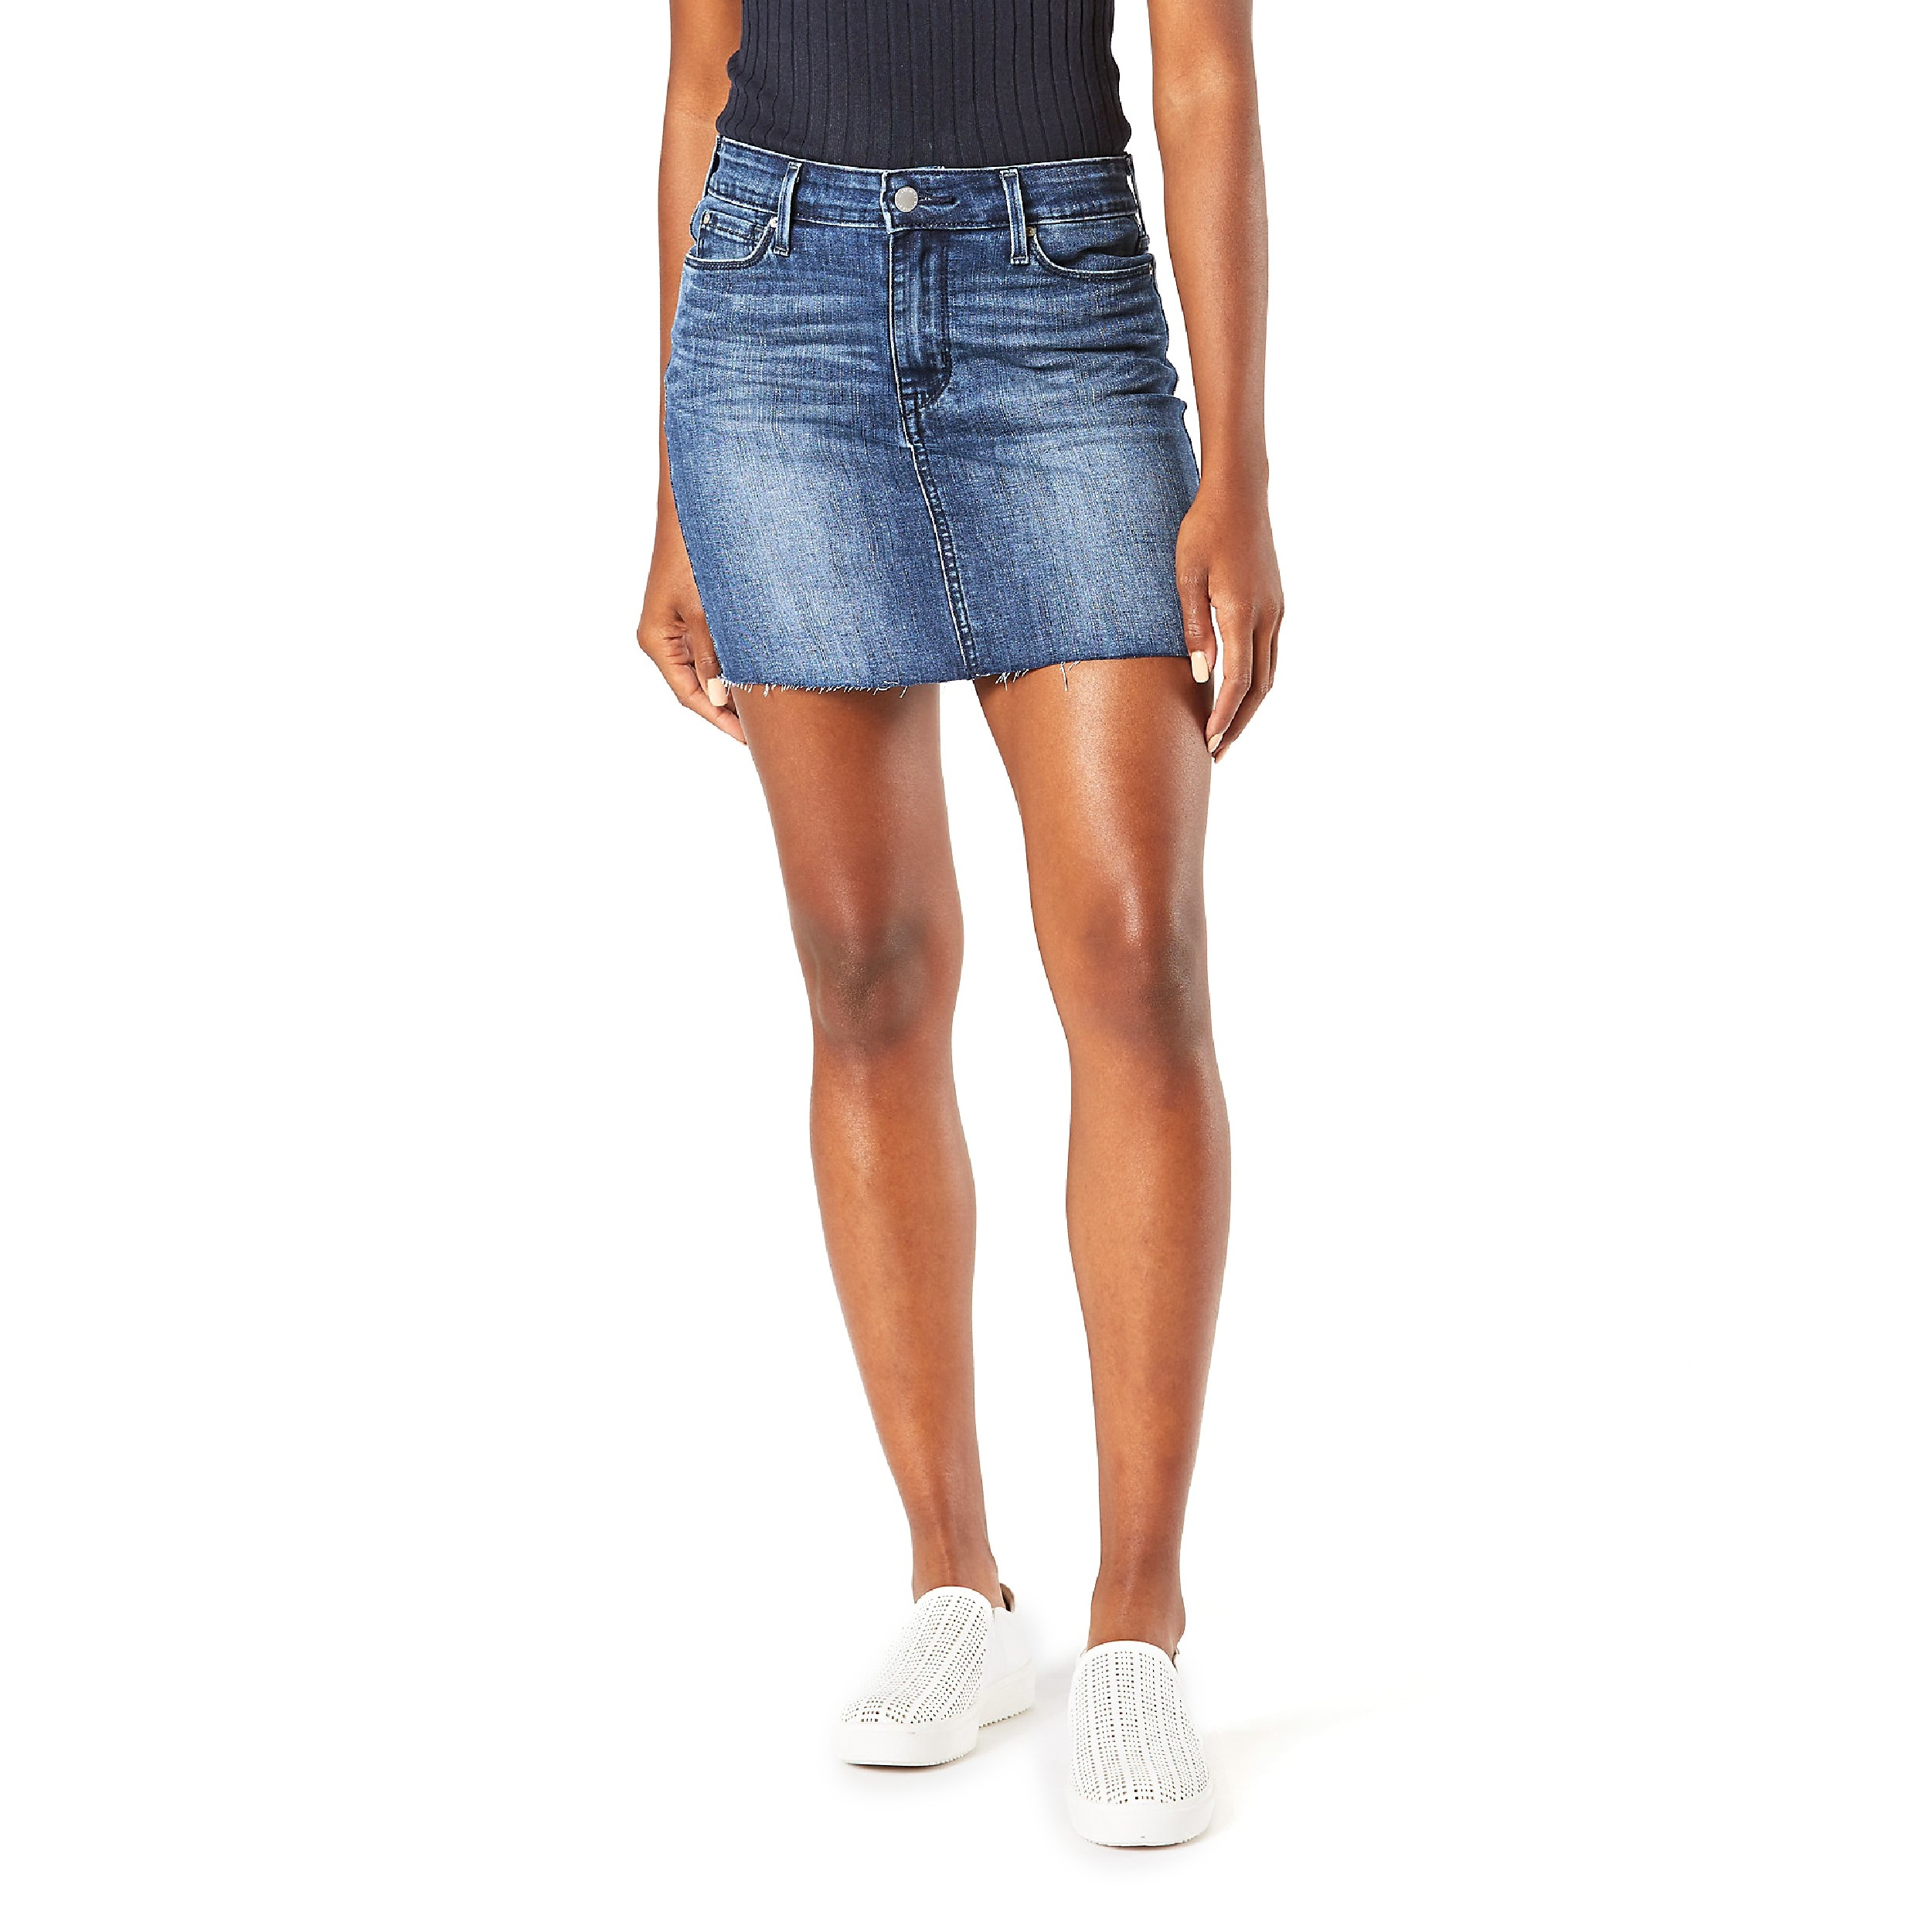 The classic denim mini skirt